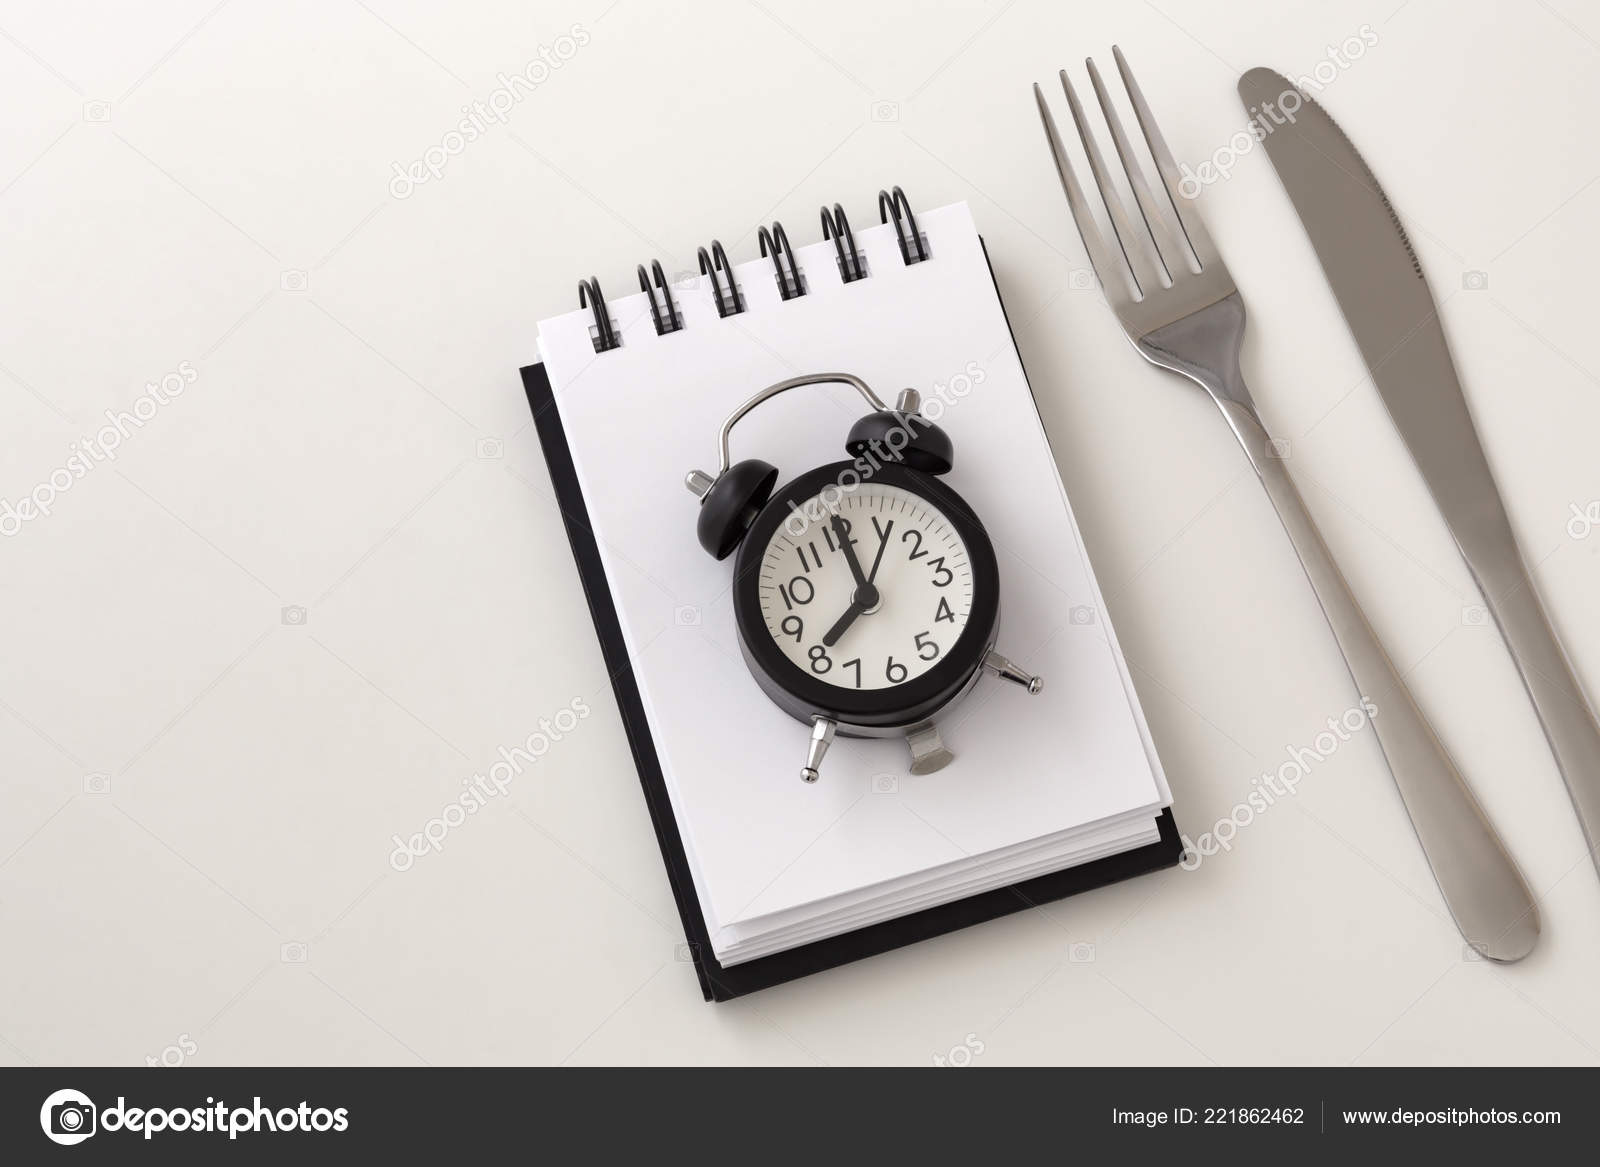 Clock Notepad Fork Knife Intermittent Fasting Weight Loss